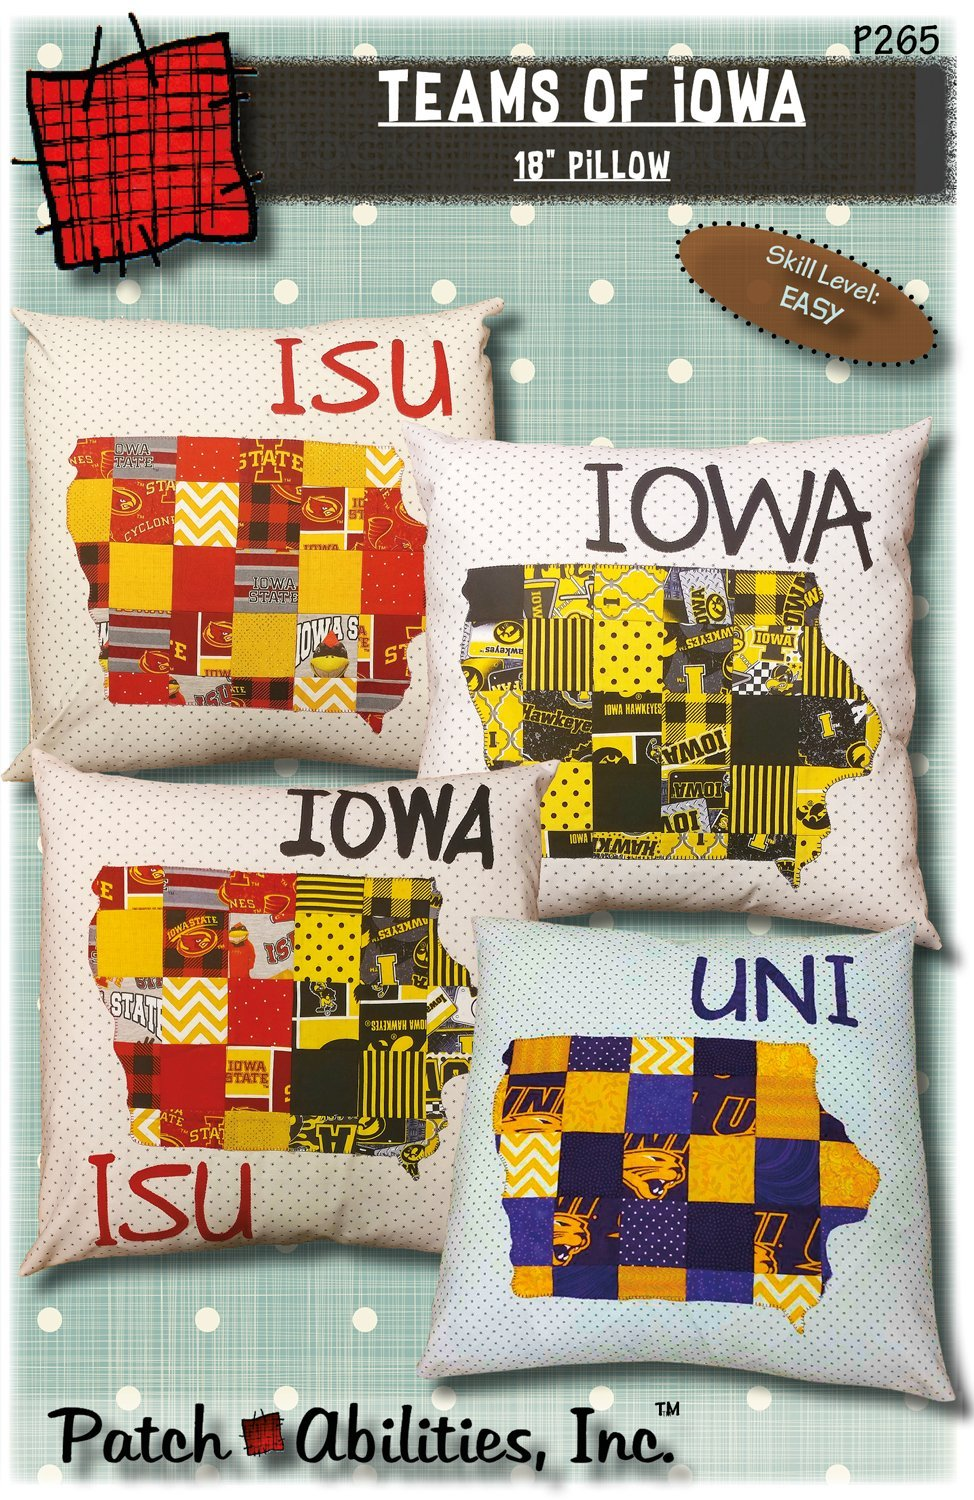 Teams of Iowa Pillow pattern- 265